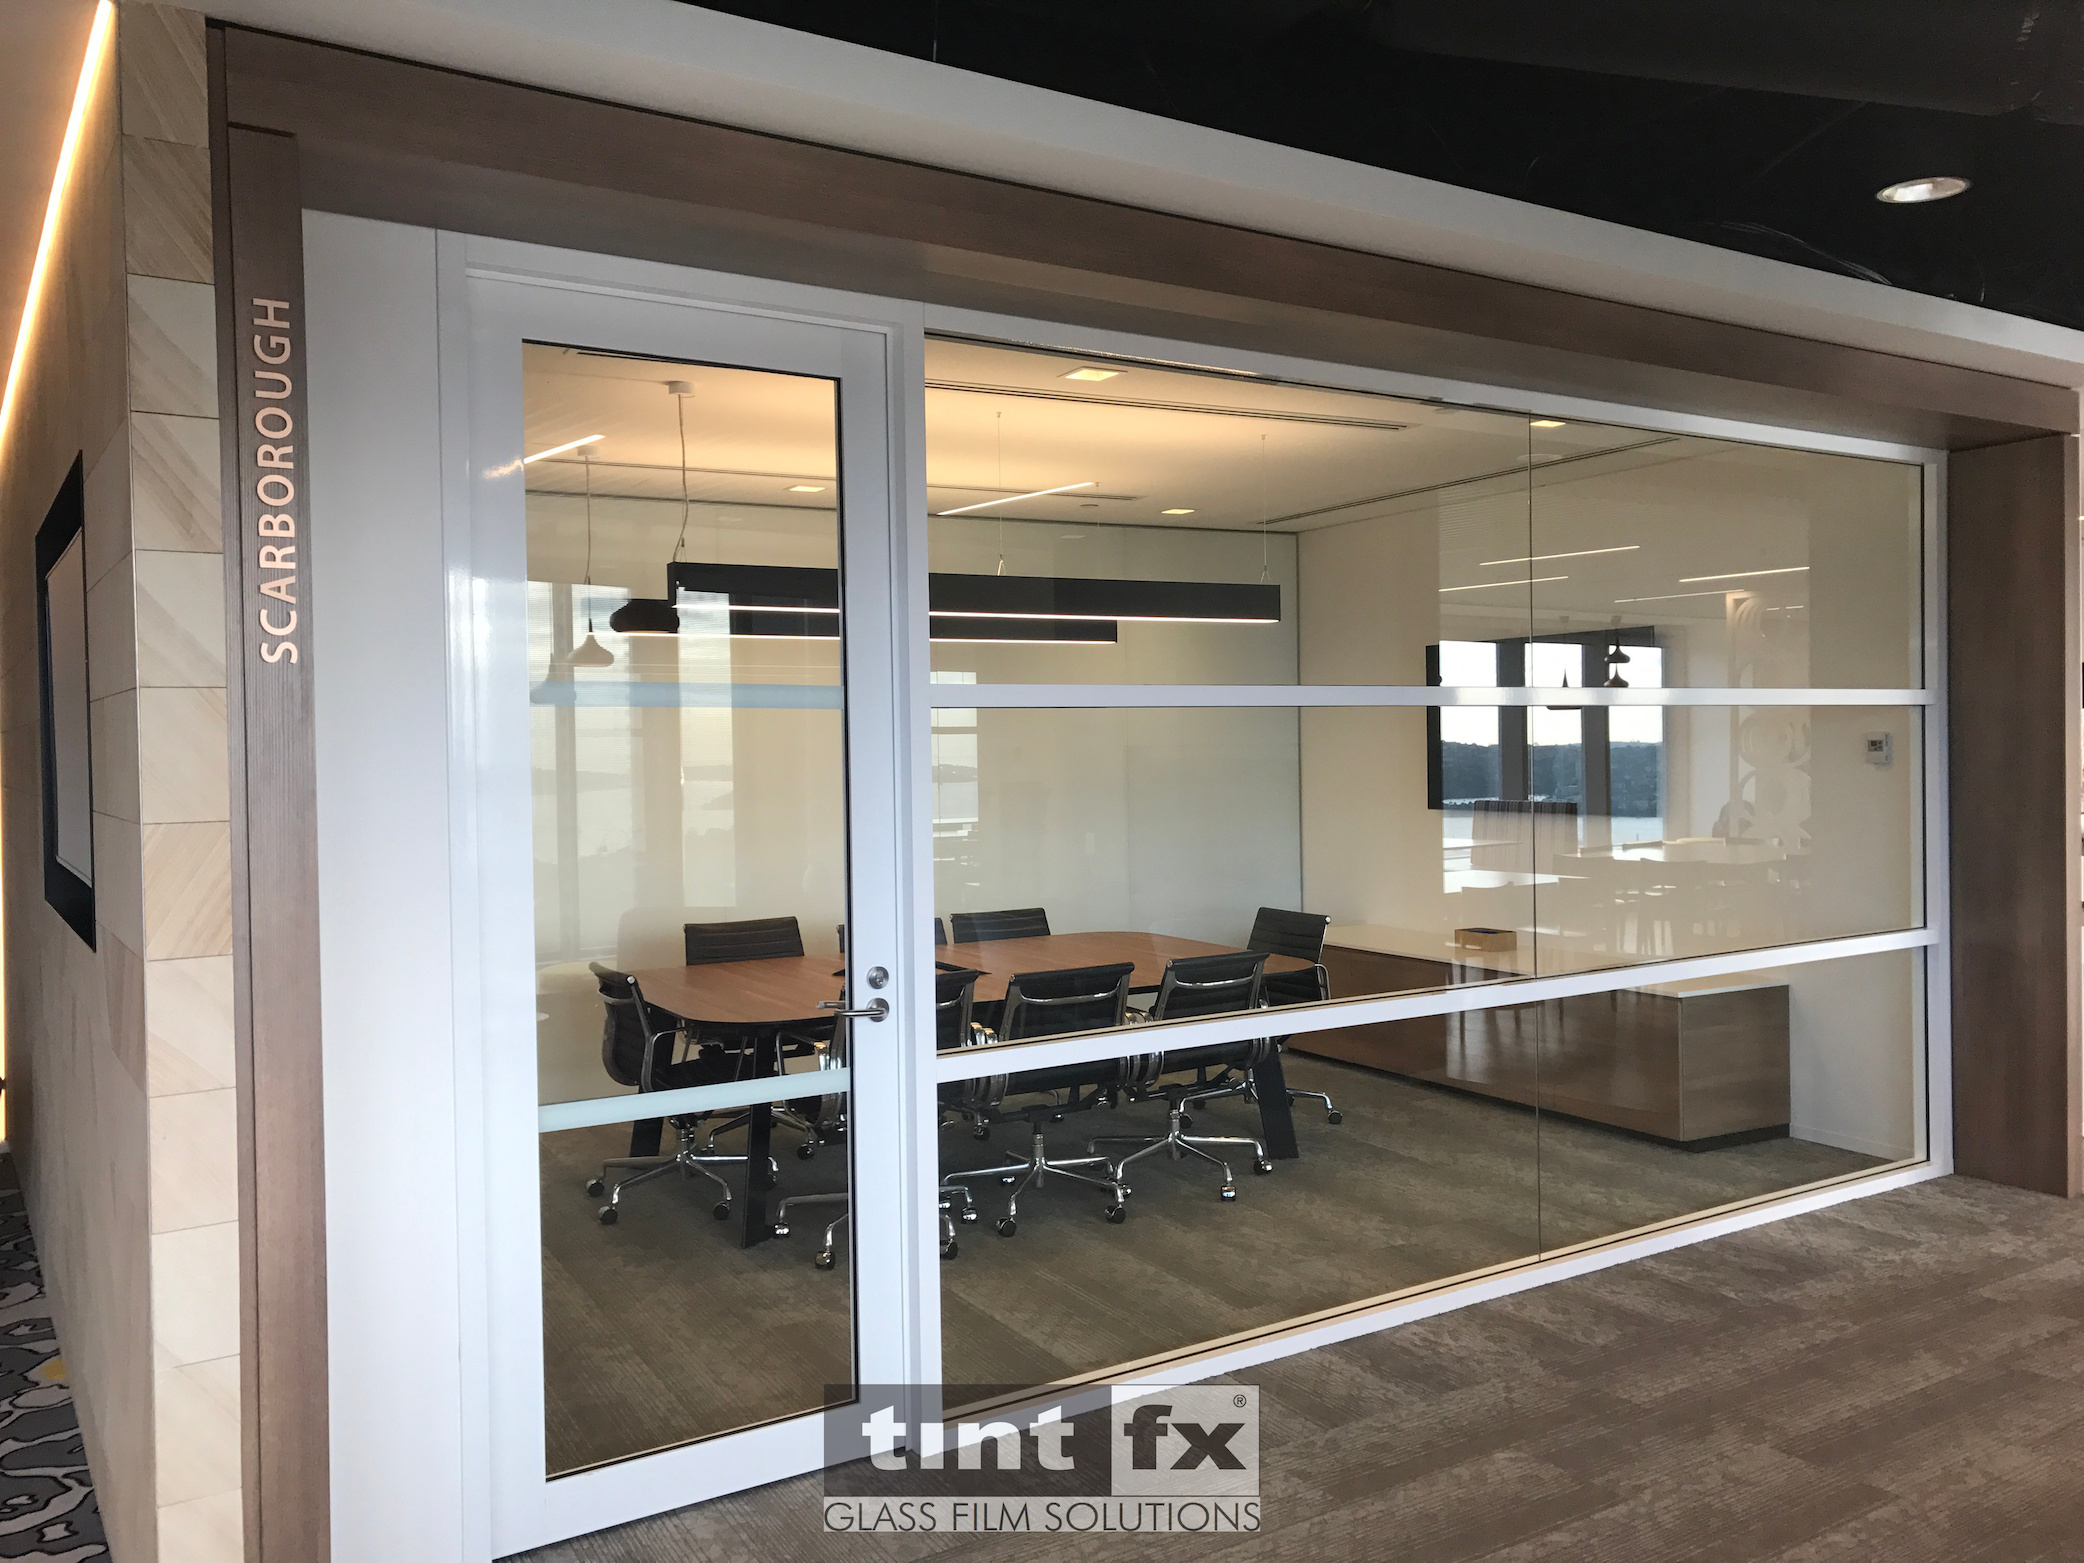 Computer Cut Graphics and Laser Cut Signage - Mundipharma Offices